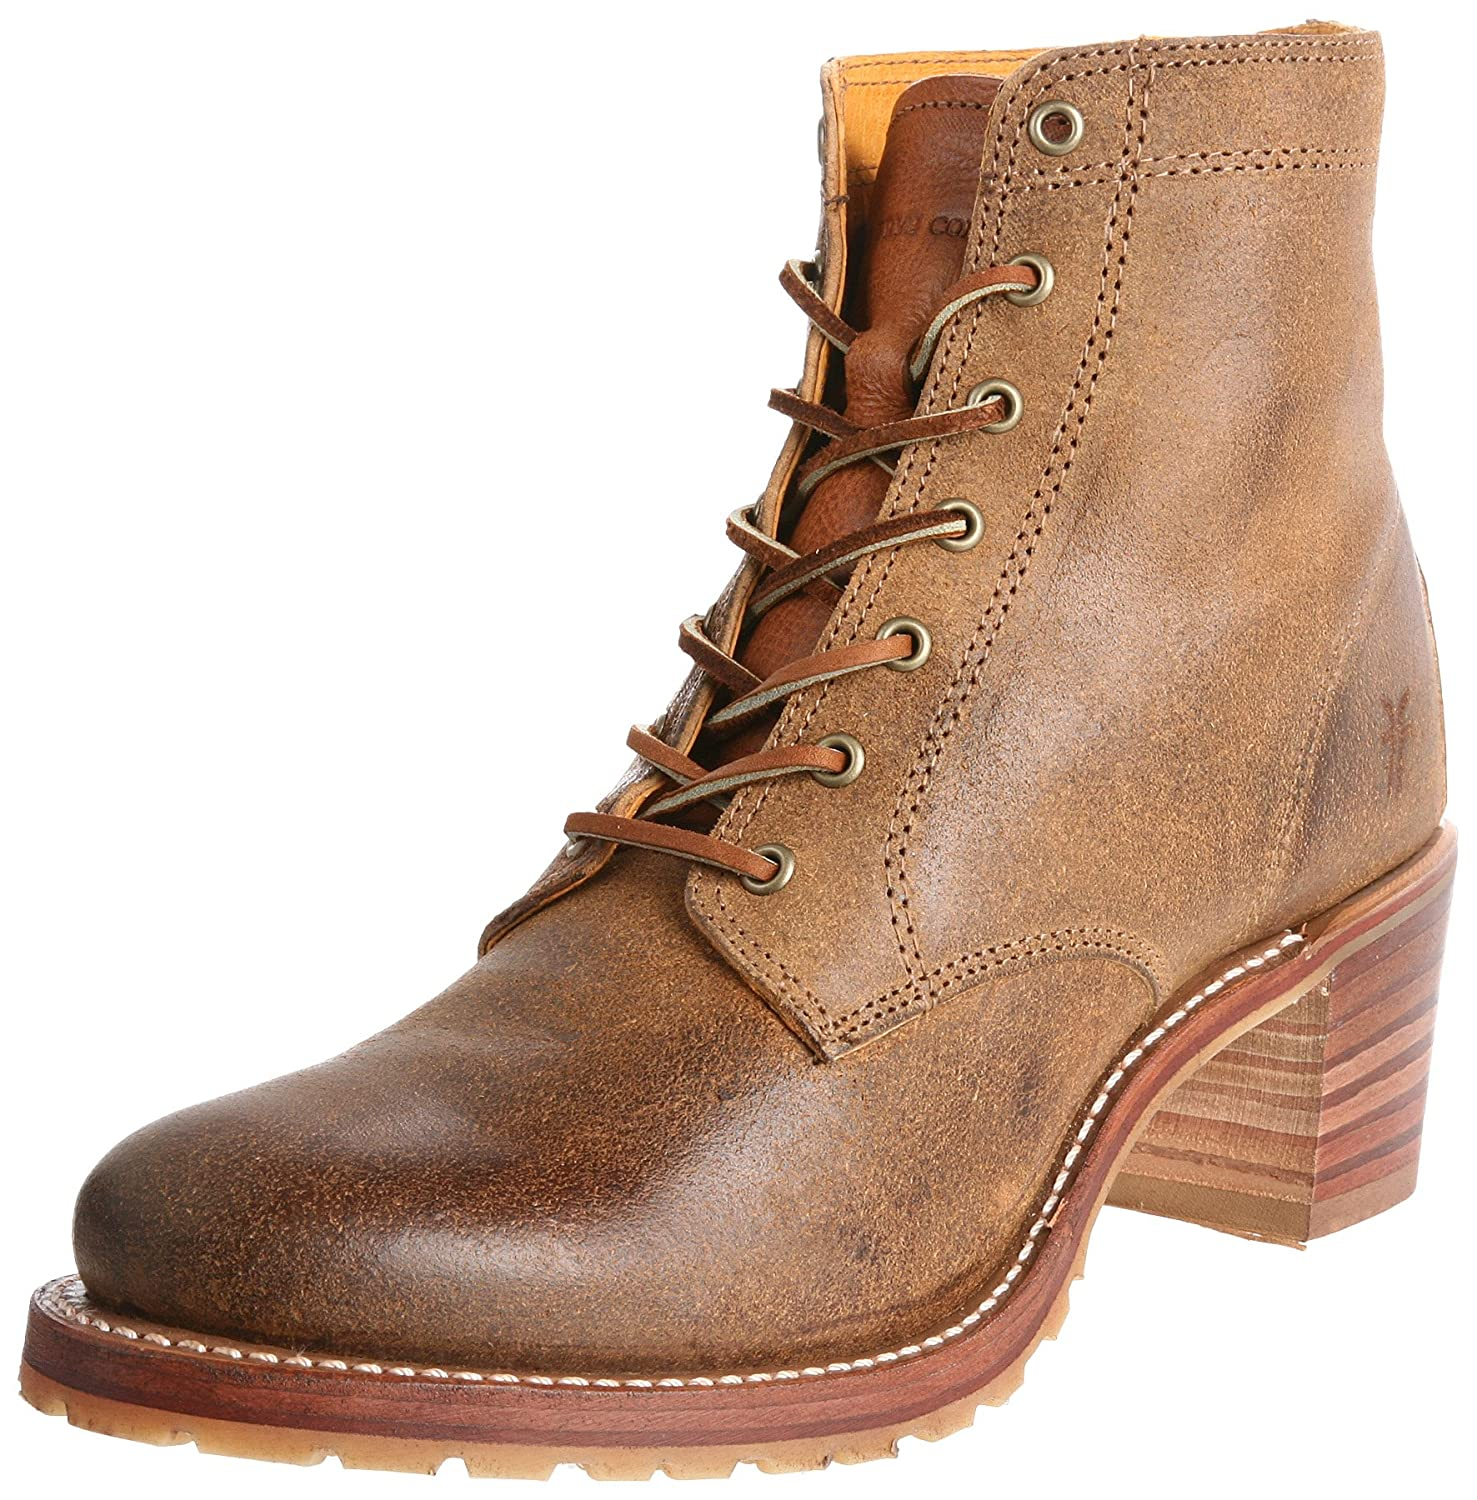 FRYE Women's Sabrina 6G Lace-Up Boot B004GTP6A0 11 B(M) US|Tan-77591